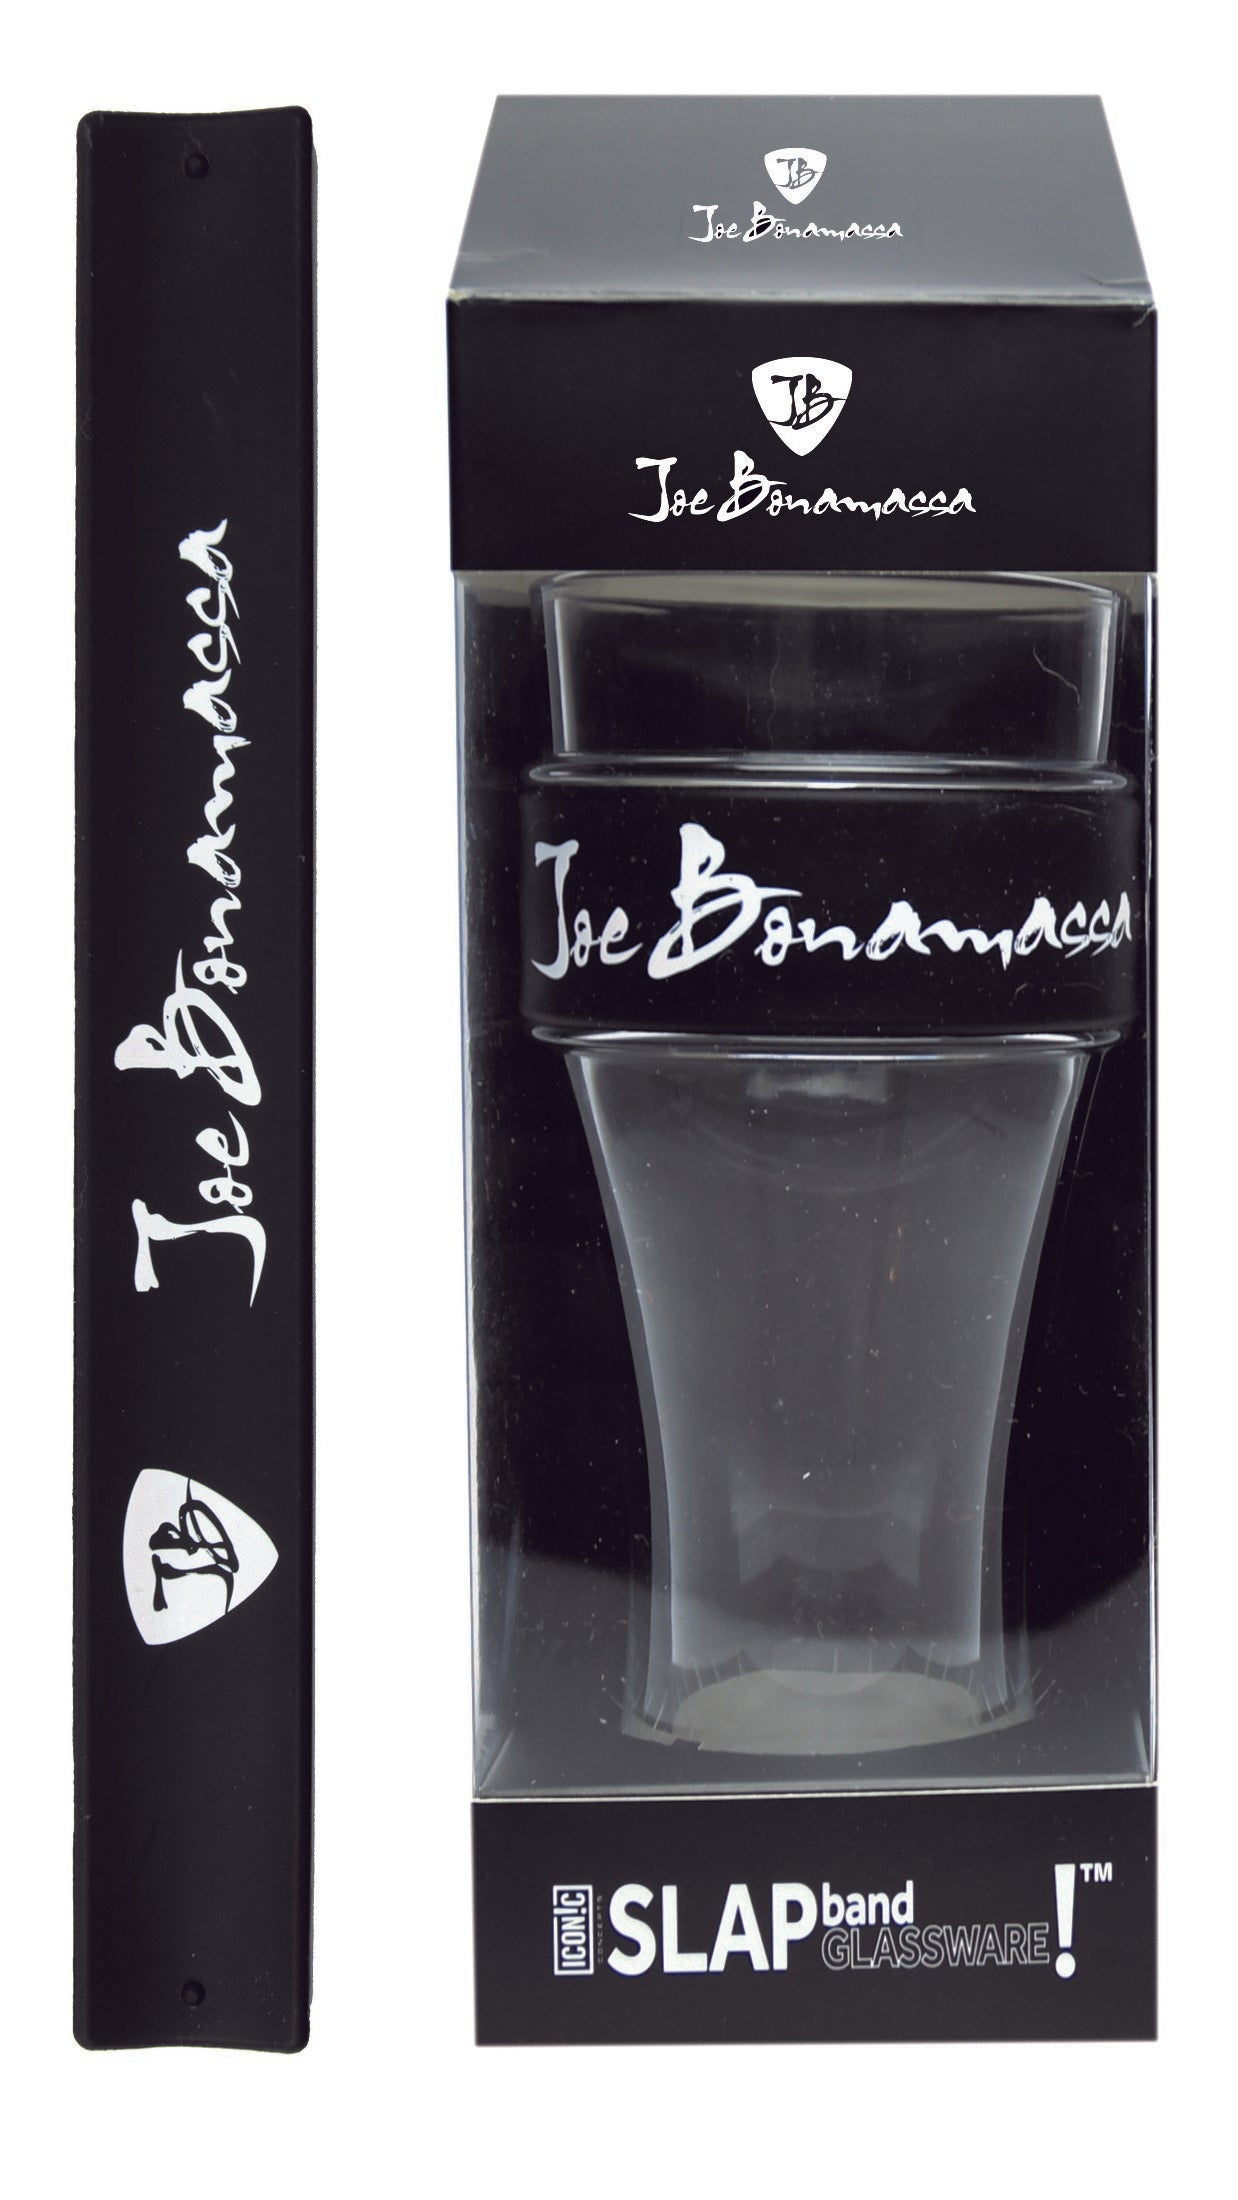 Joe Bonamassa Slap Band Glassware - Single Pack with Slap Band Joe Bonamassa Black Band/White Logo